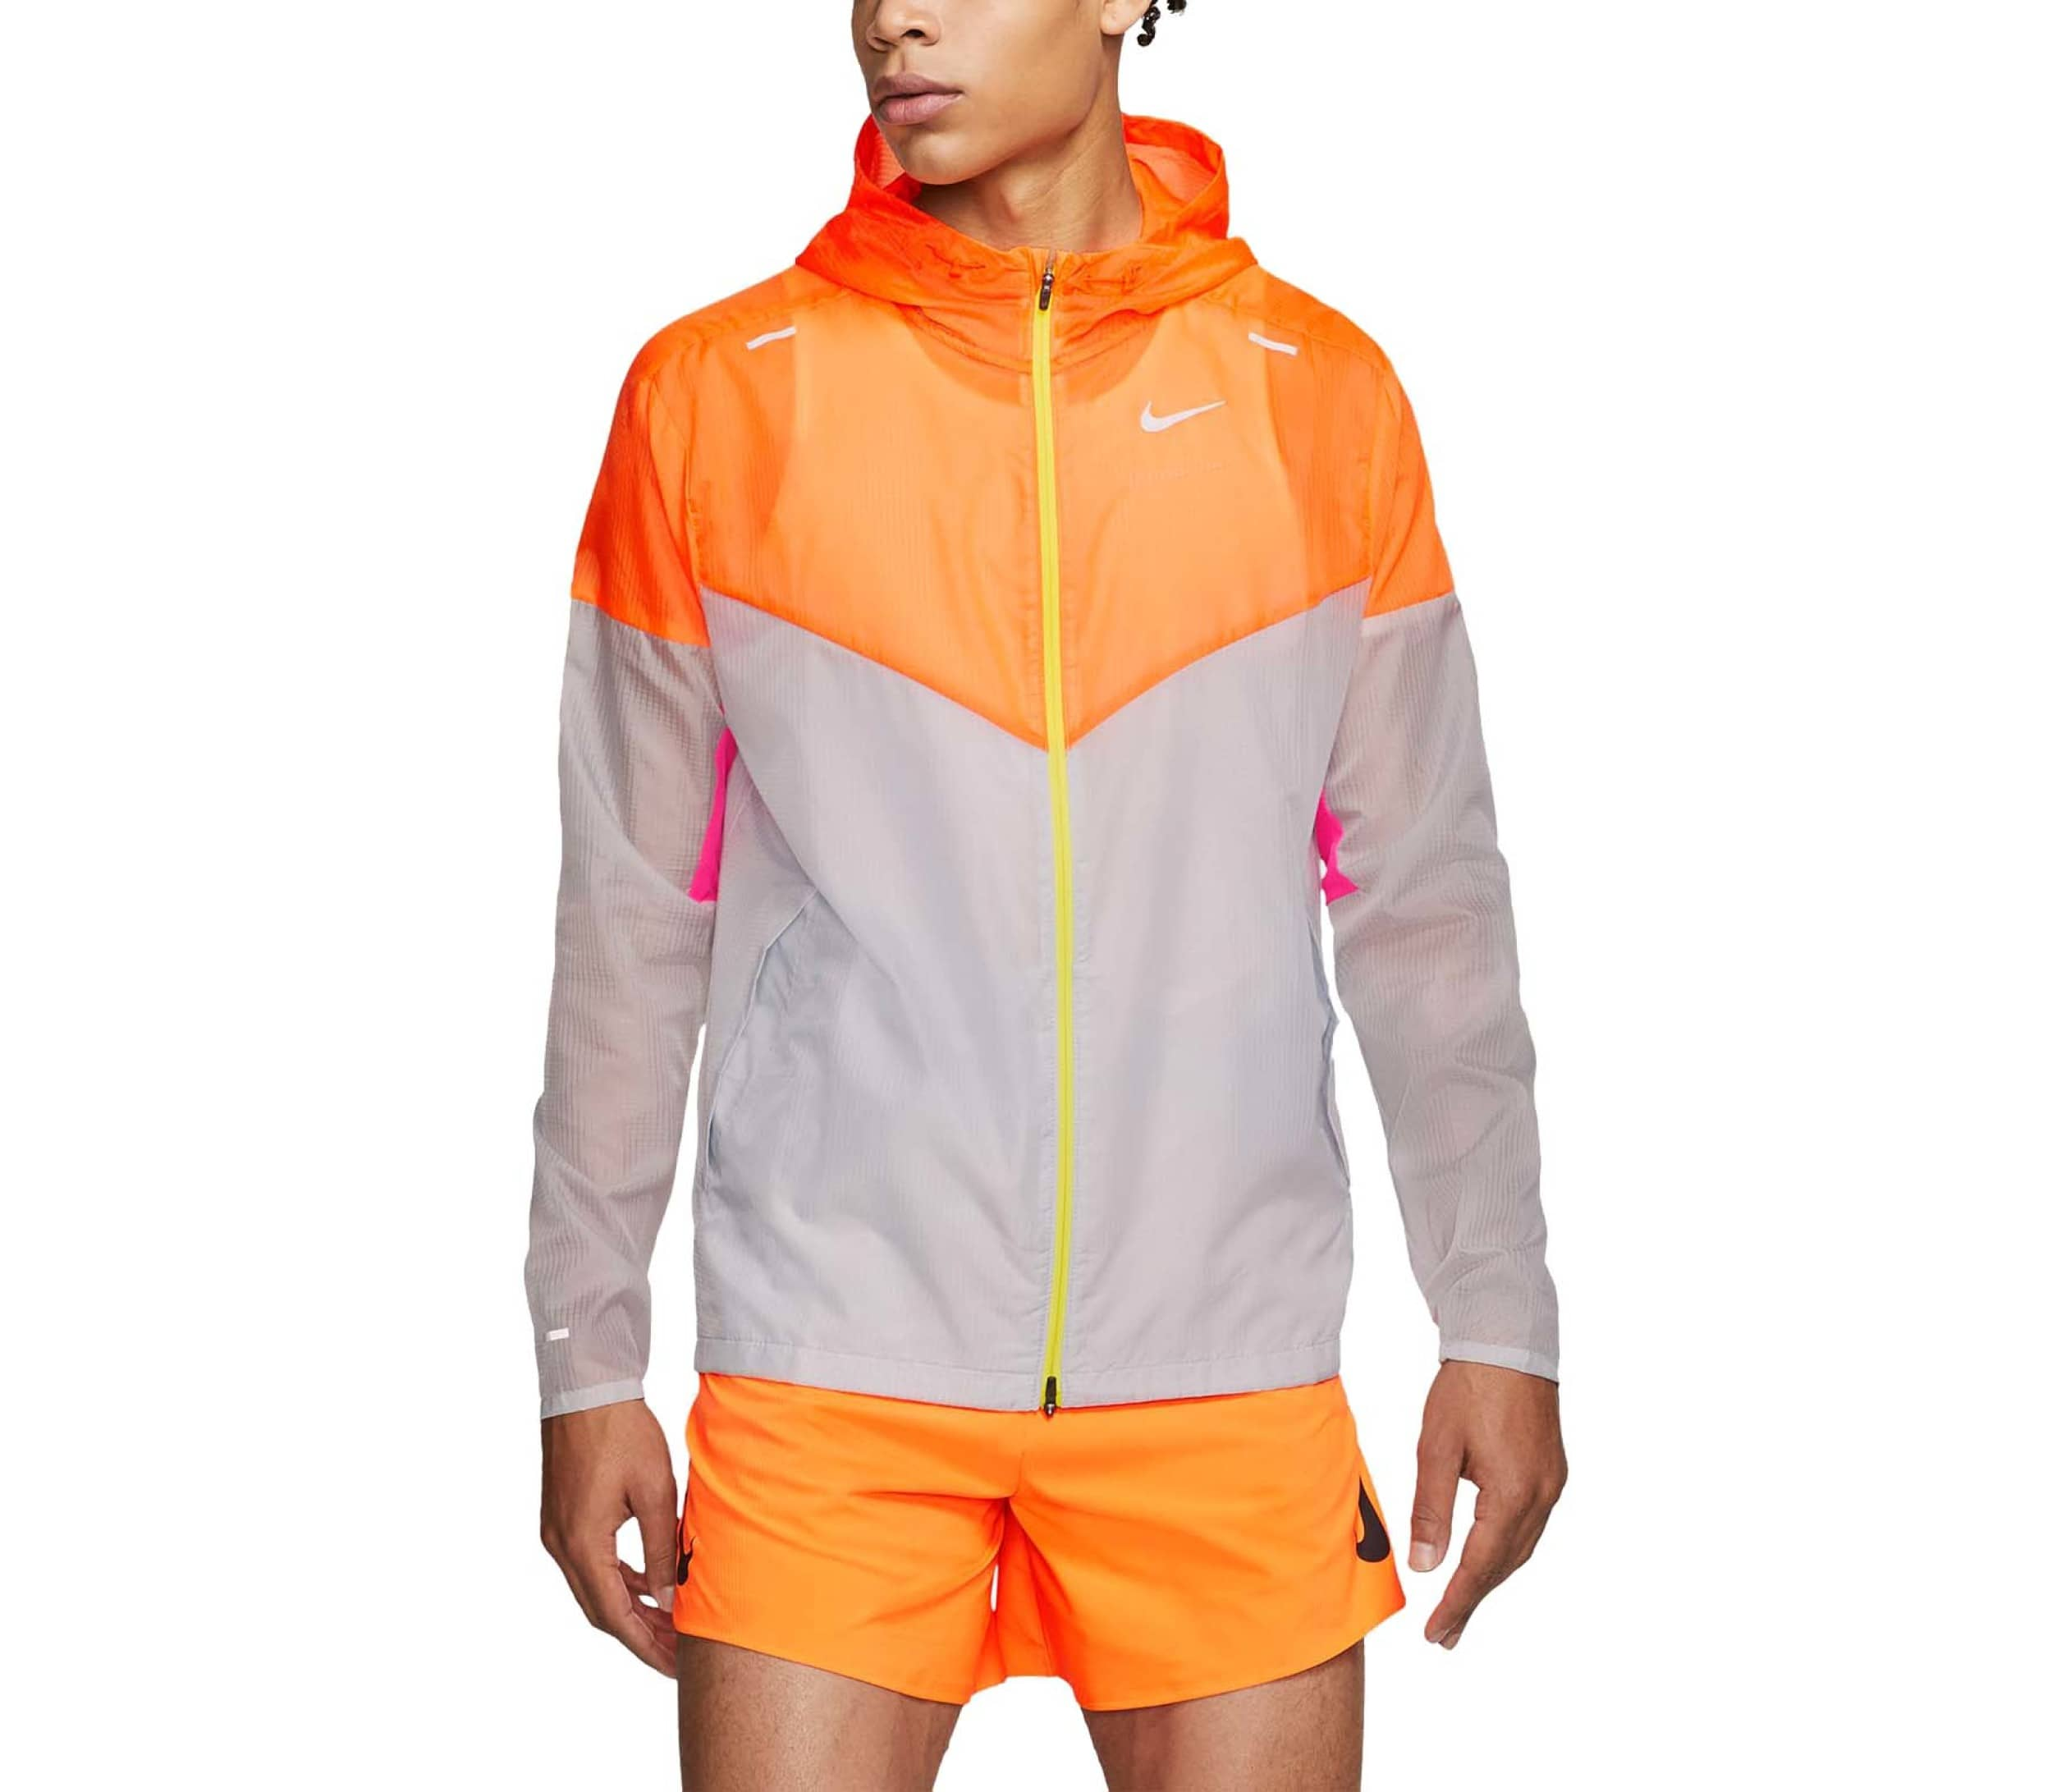 Nike Windrunner Herren Laufjacke (orange weiß) 89,90 €